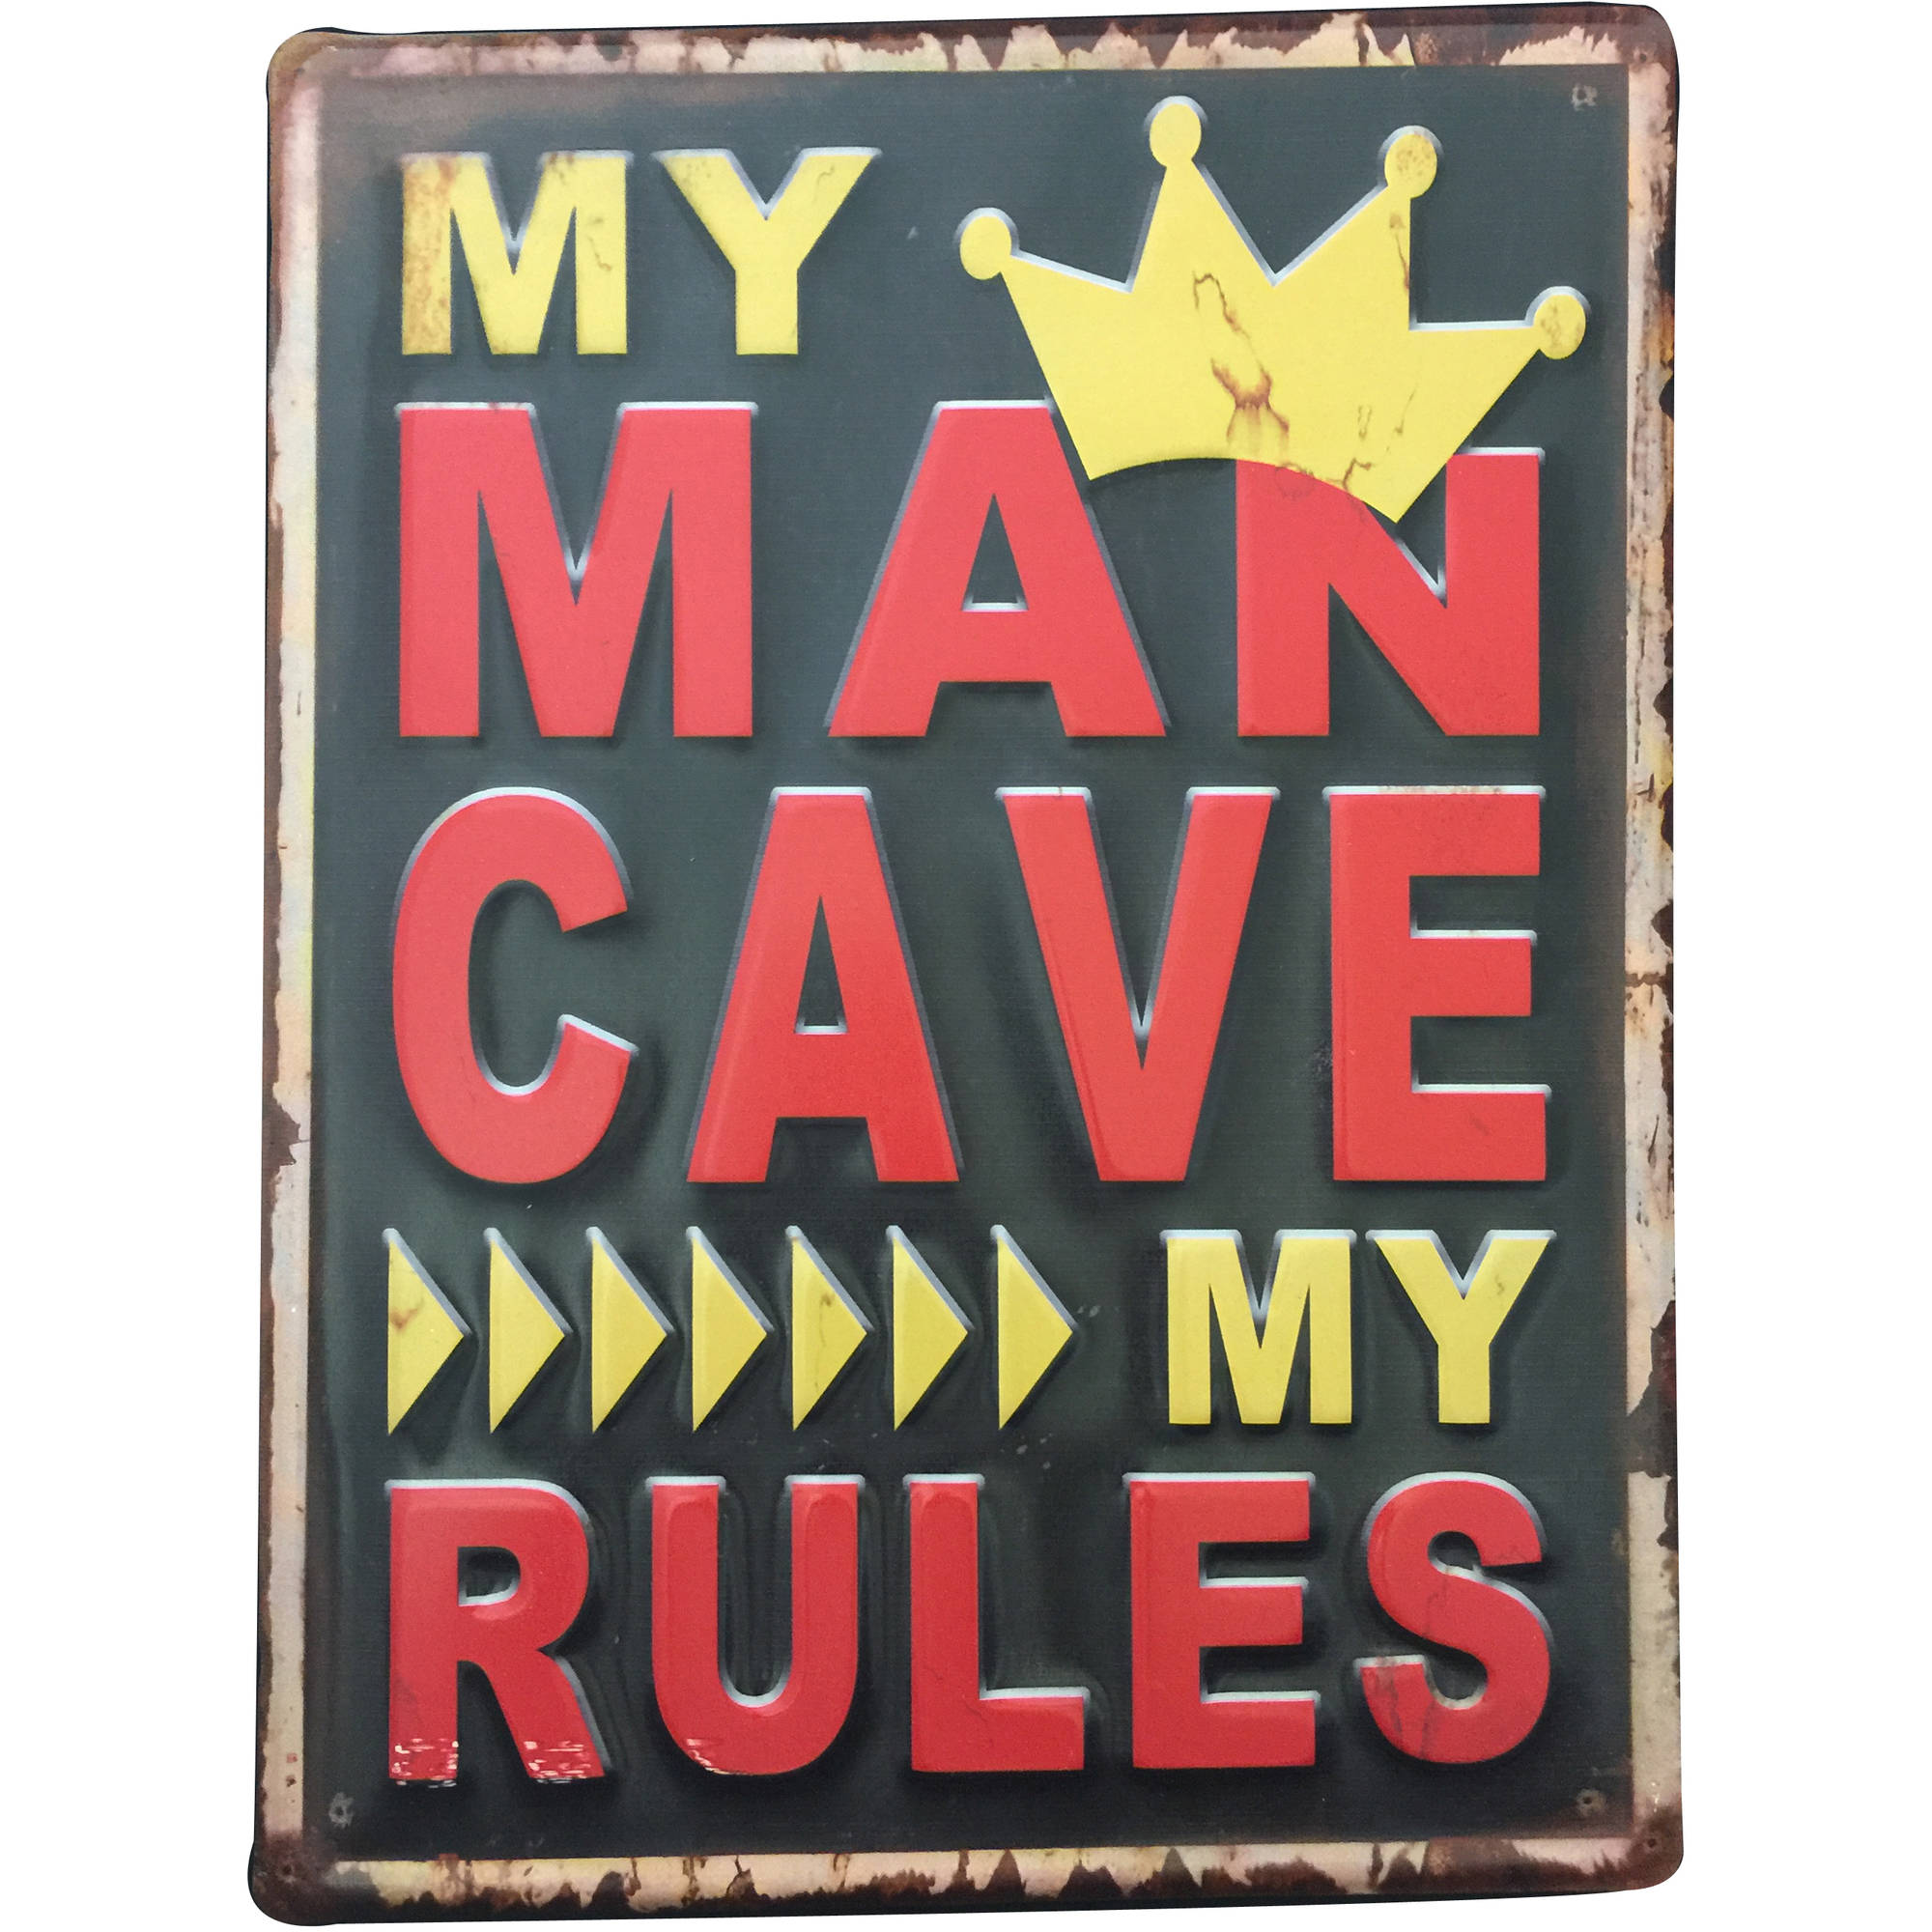 My Man Cave My Rules Metal Wall Art  sc 1 st  Walmart & My Man Cave My Rules Metal Wall Art - Walmart.com